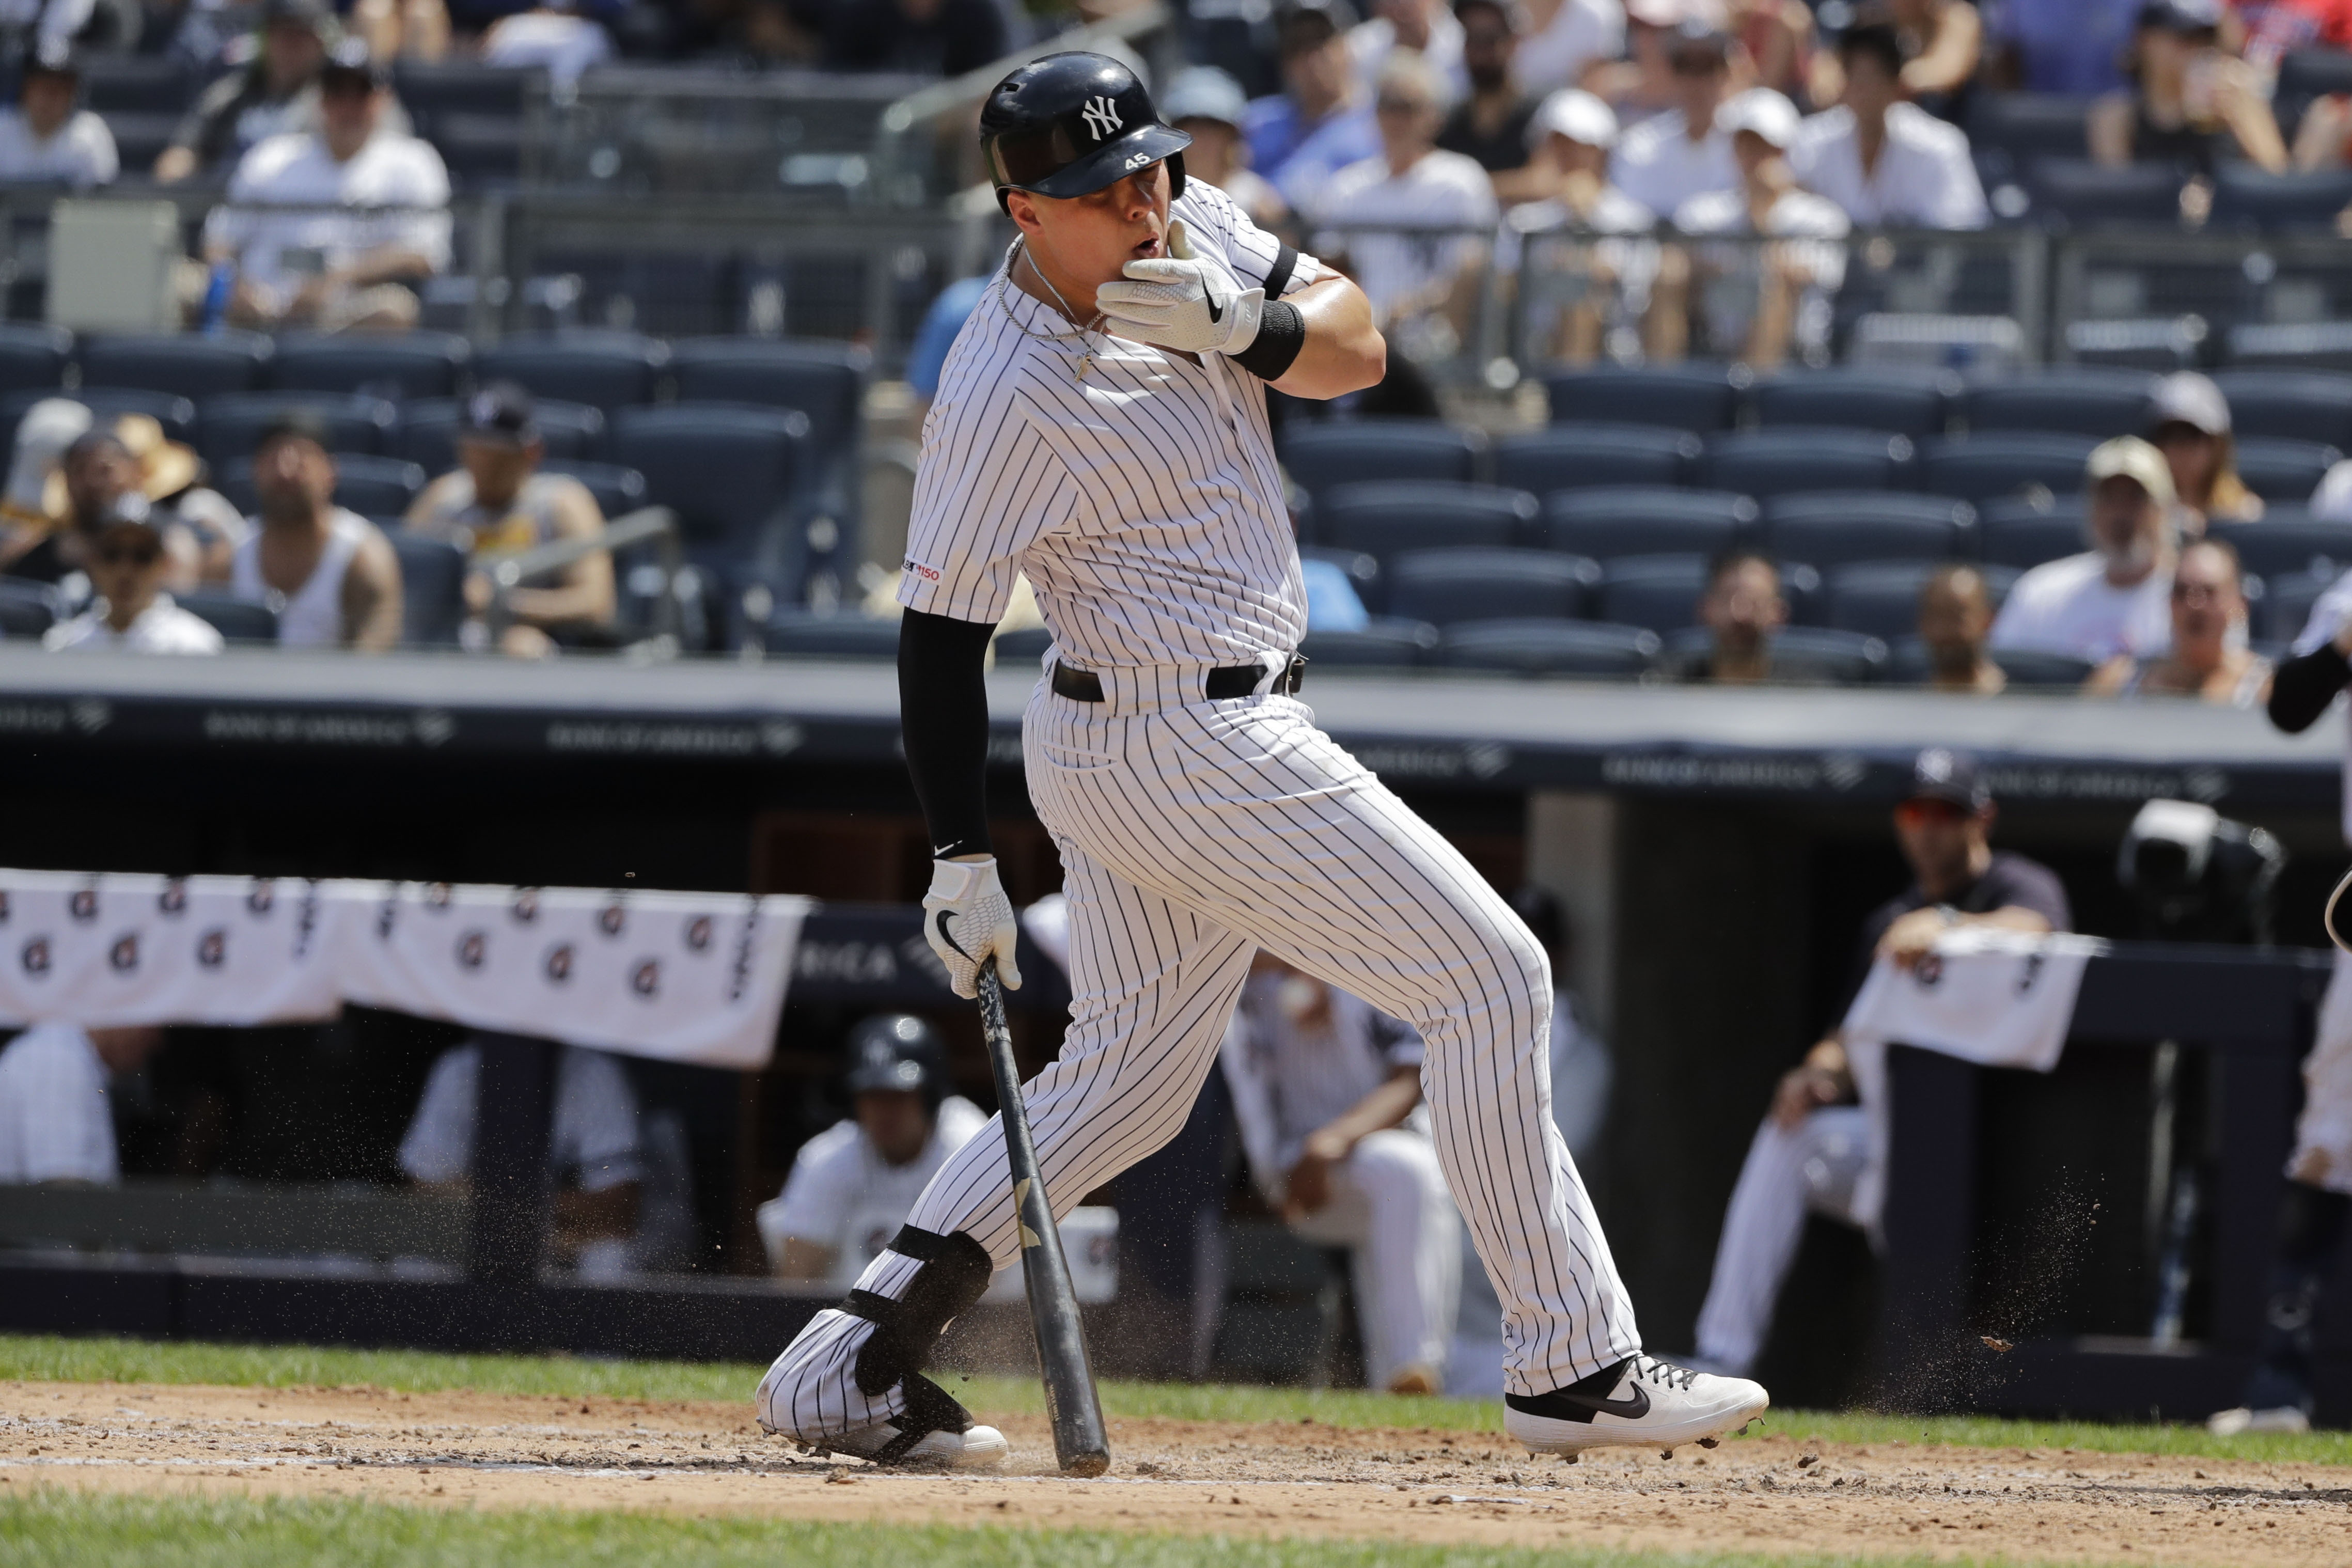 luke voit after being hit by a baseball playing for the Yankees